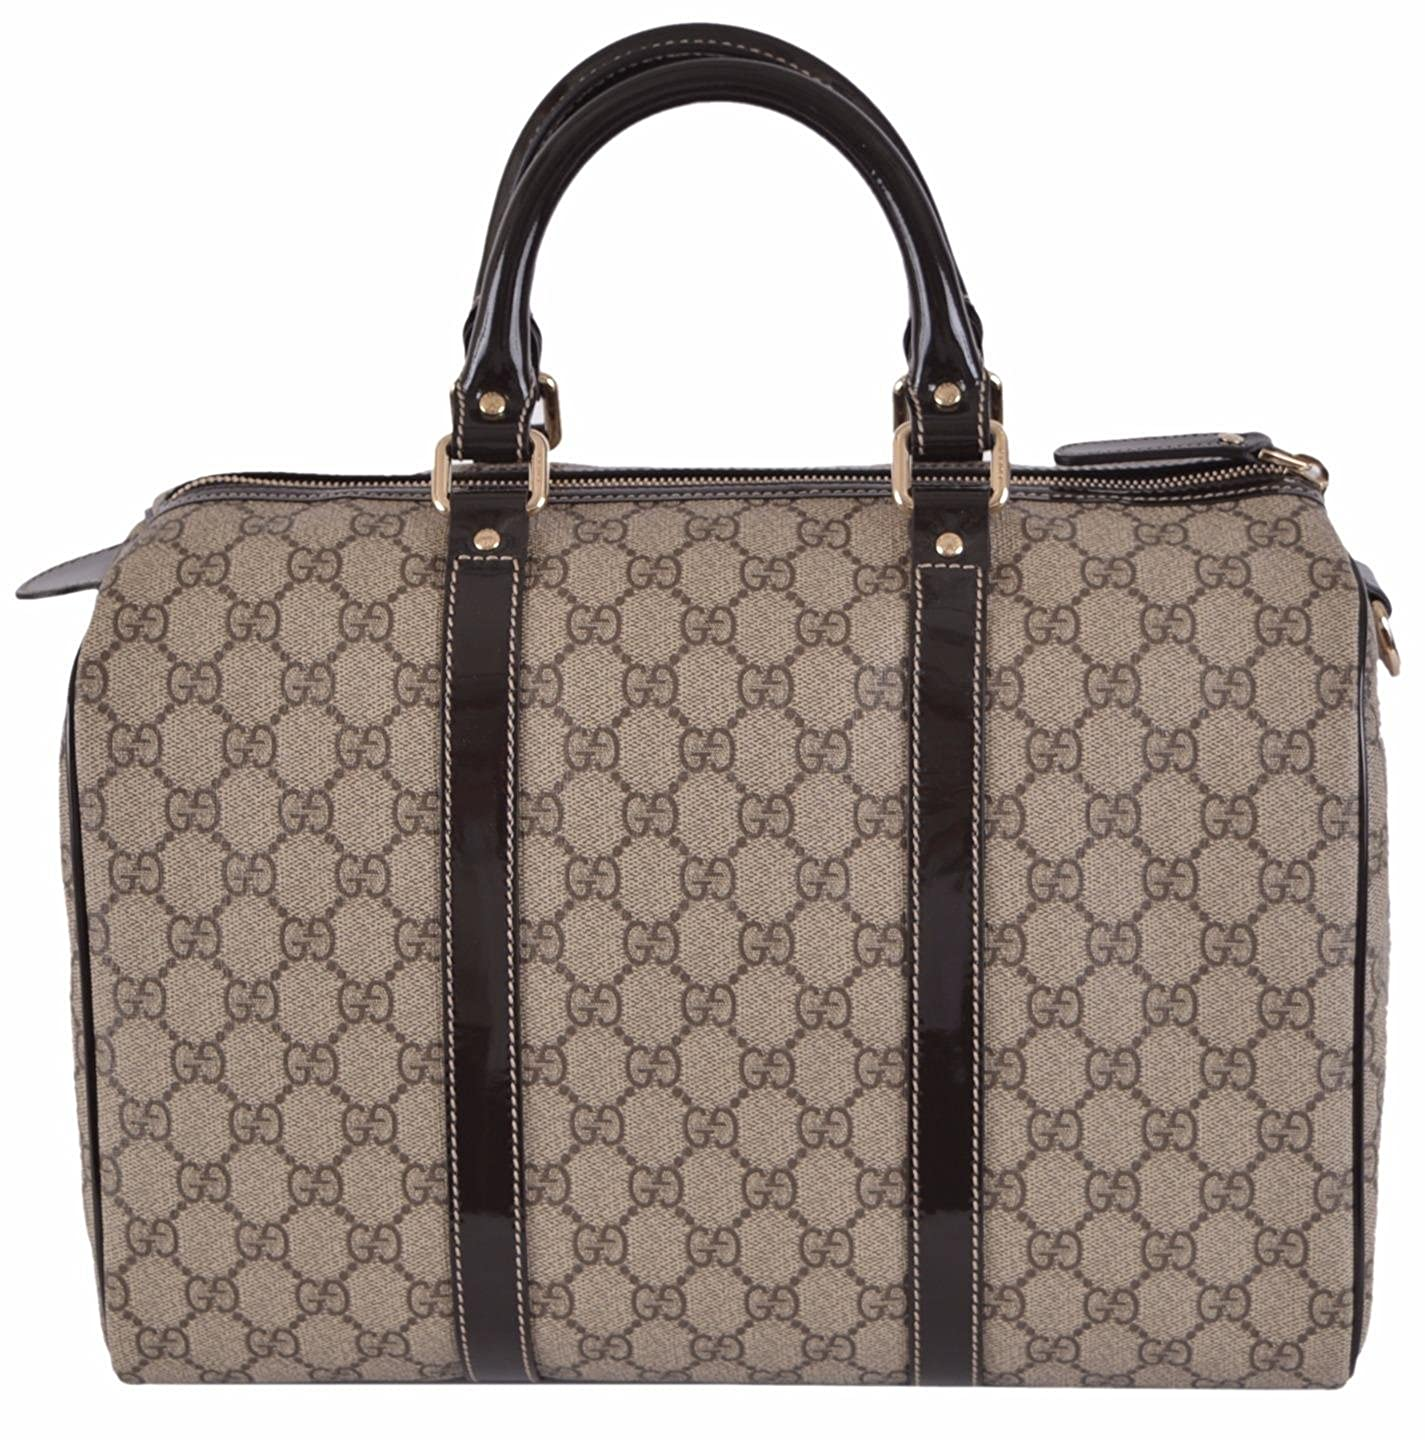 eba84e682305d8 Amazon.com: Gucci Women's Beige Brown GG Supreme Canvas Boston Purse  Satchel: Shoes